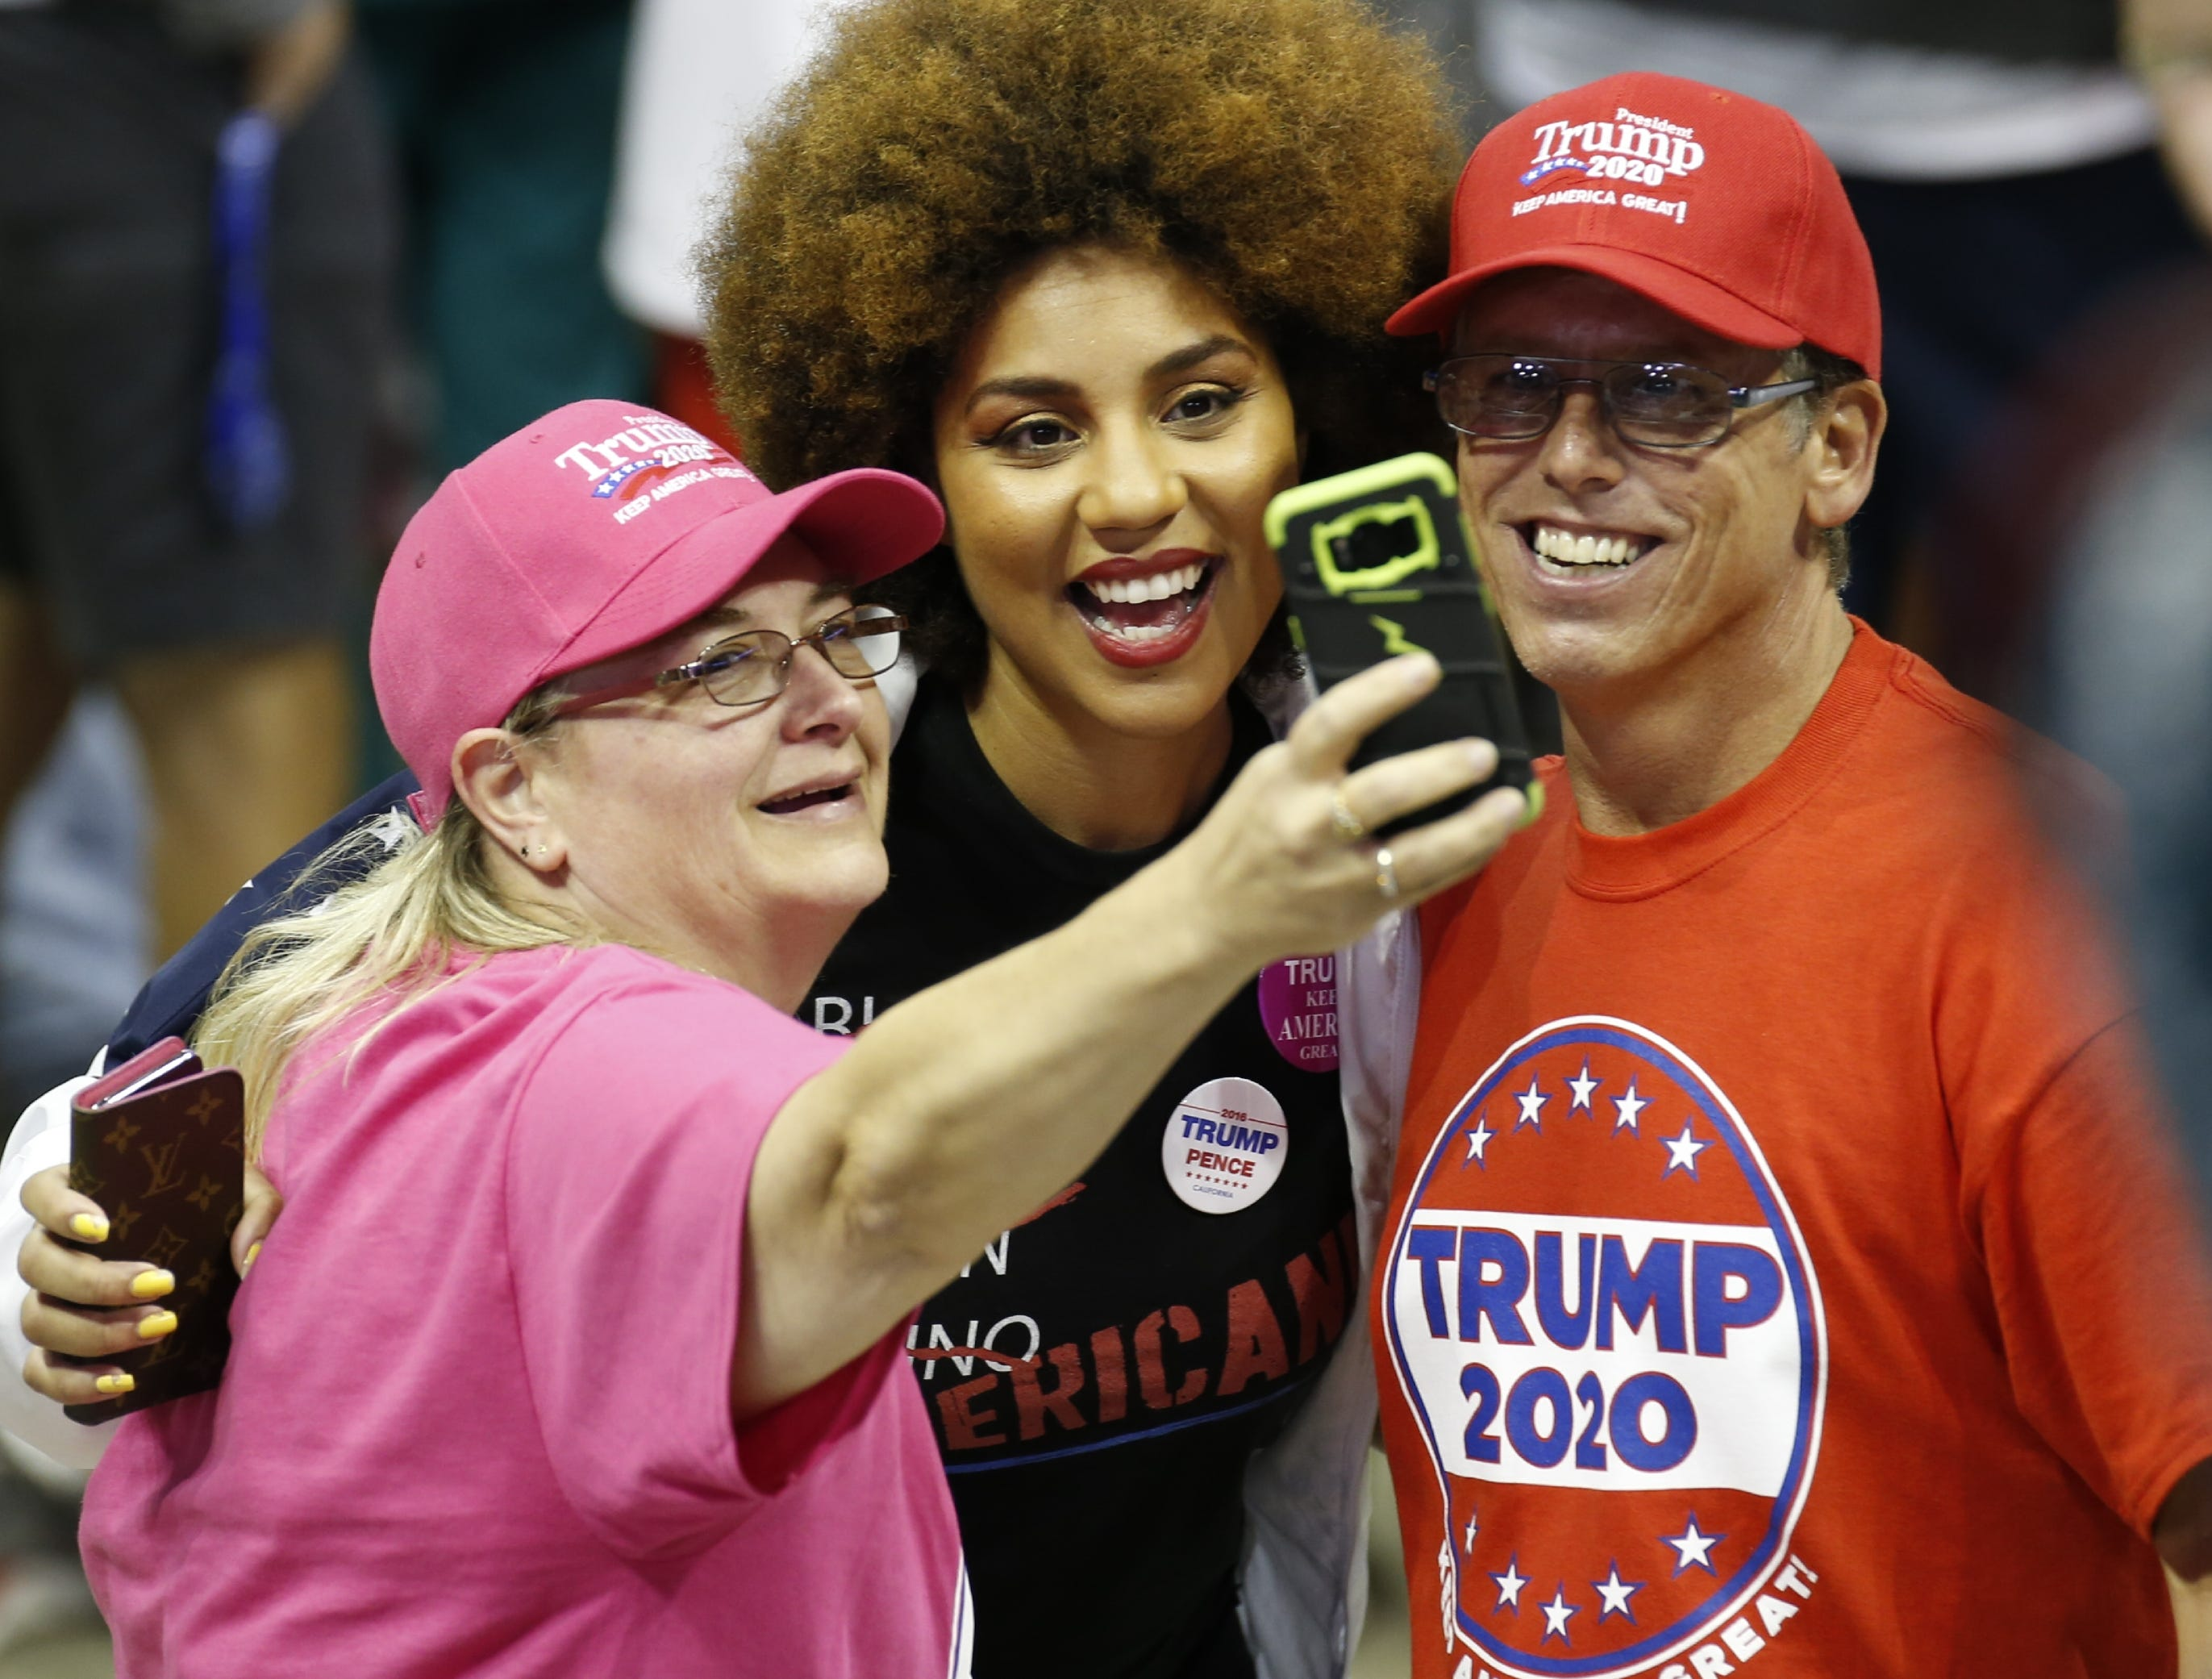 Supporters of President Trump wait for his rally to begin at JQH Arena on Friday, Sept. 21, 2018.